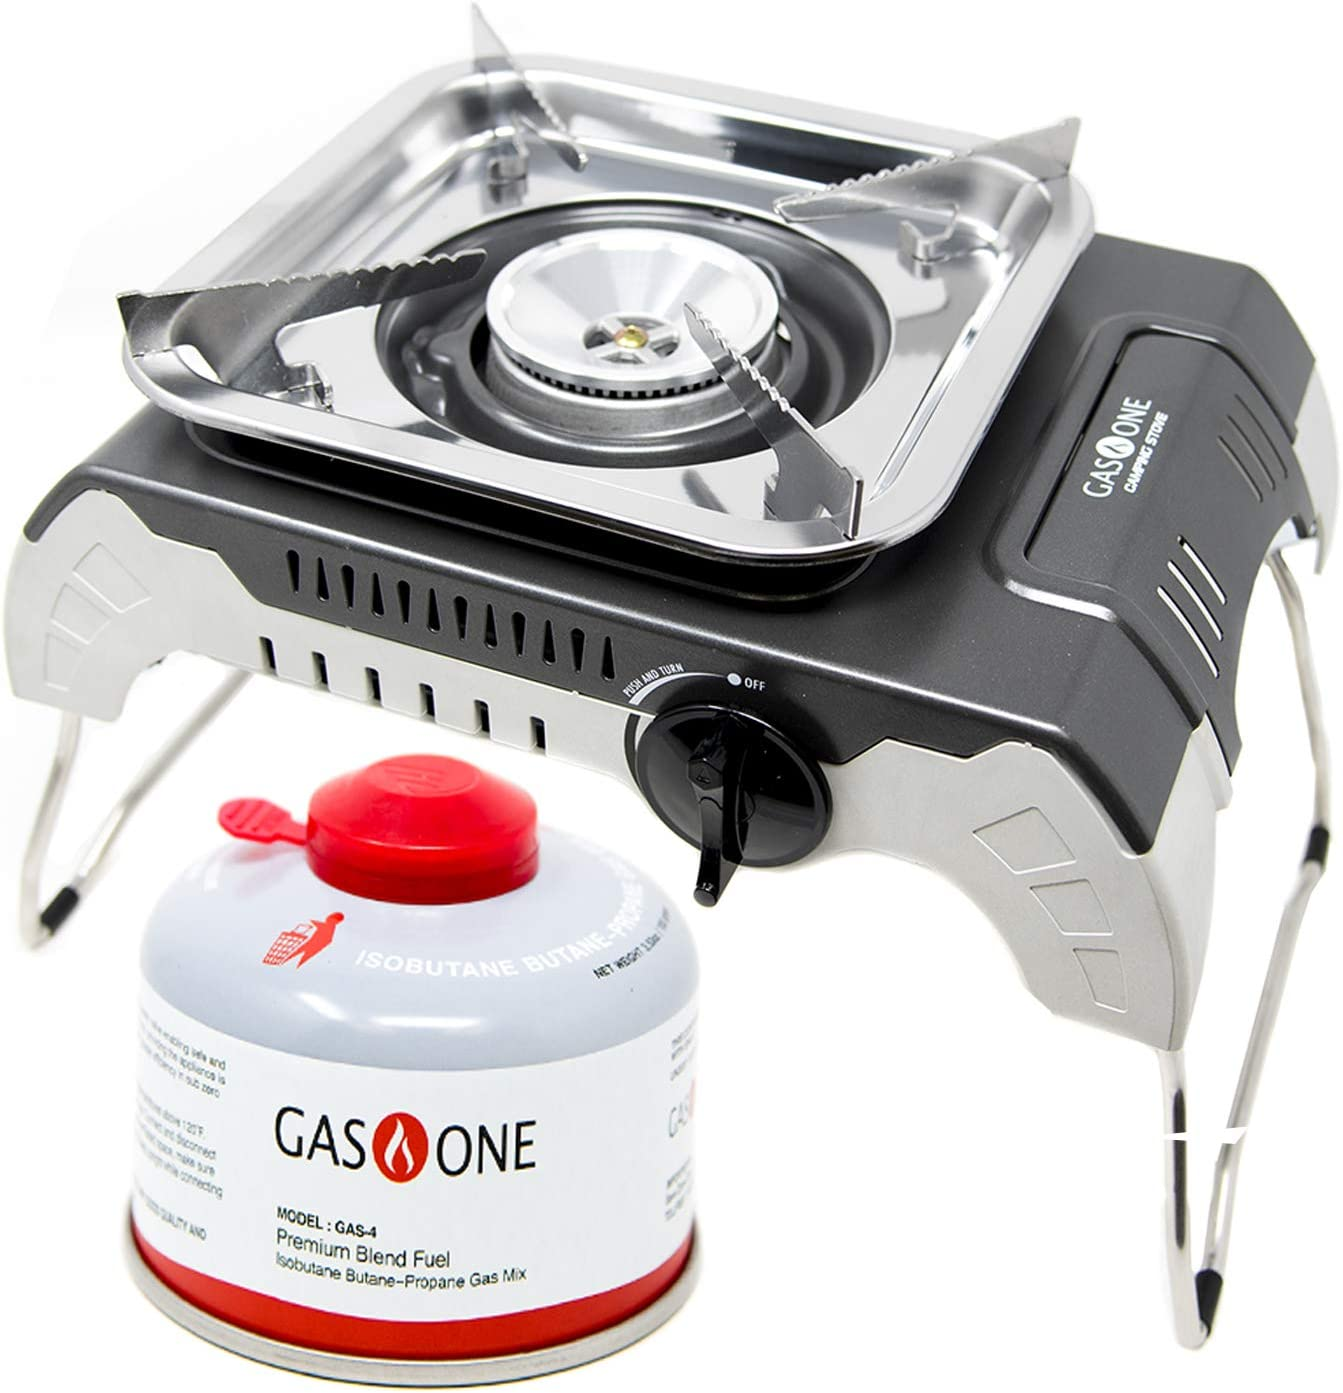 GasOne - Camp Stove with Fuel Included - Isobutane Portable Stove - High Output Stove